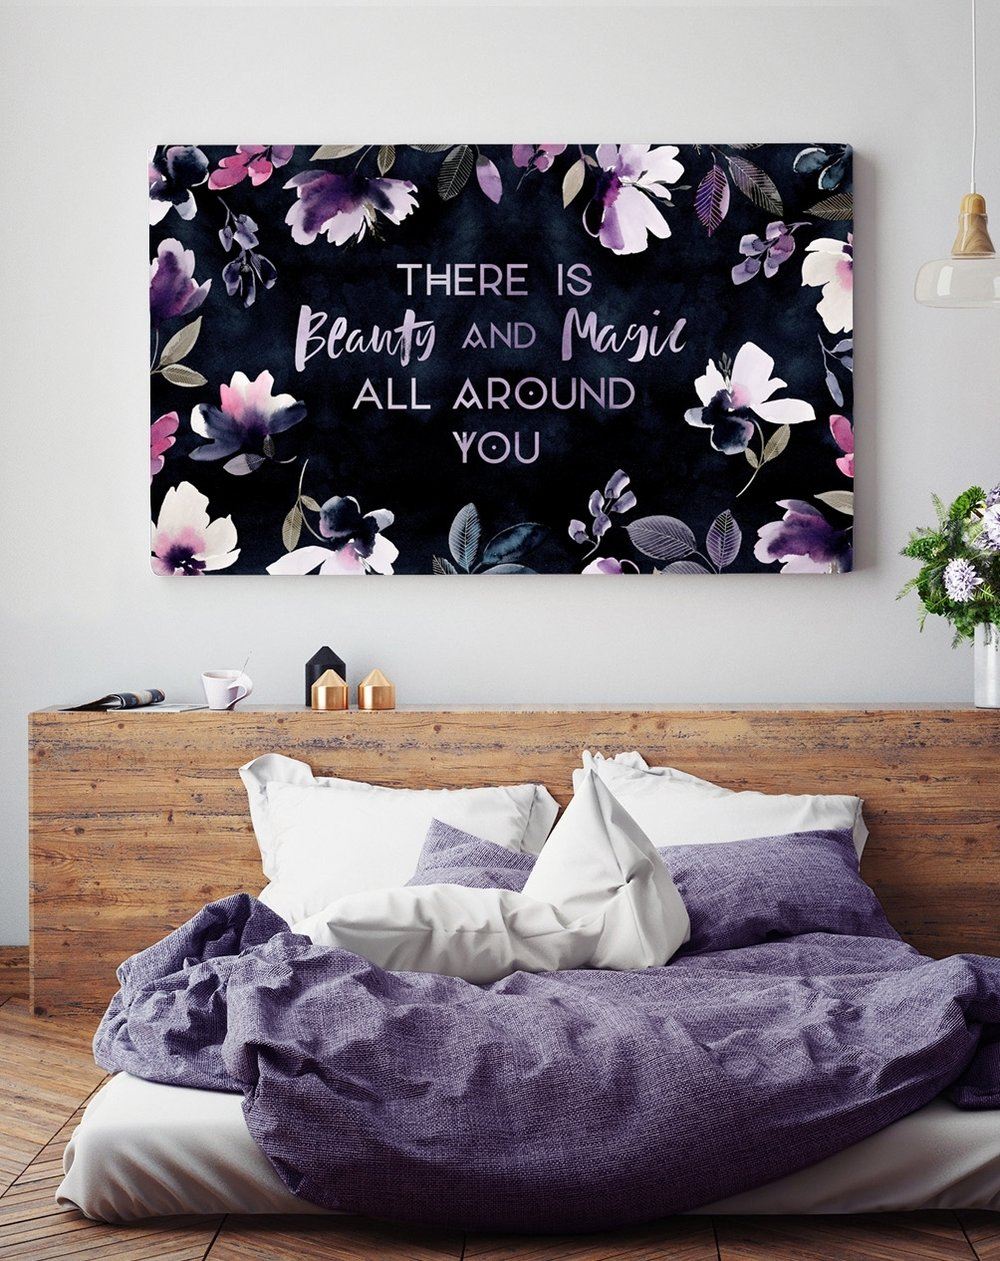 walldecor_9.jpg